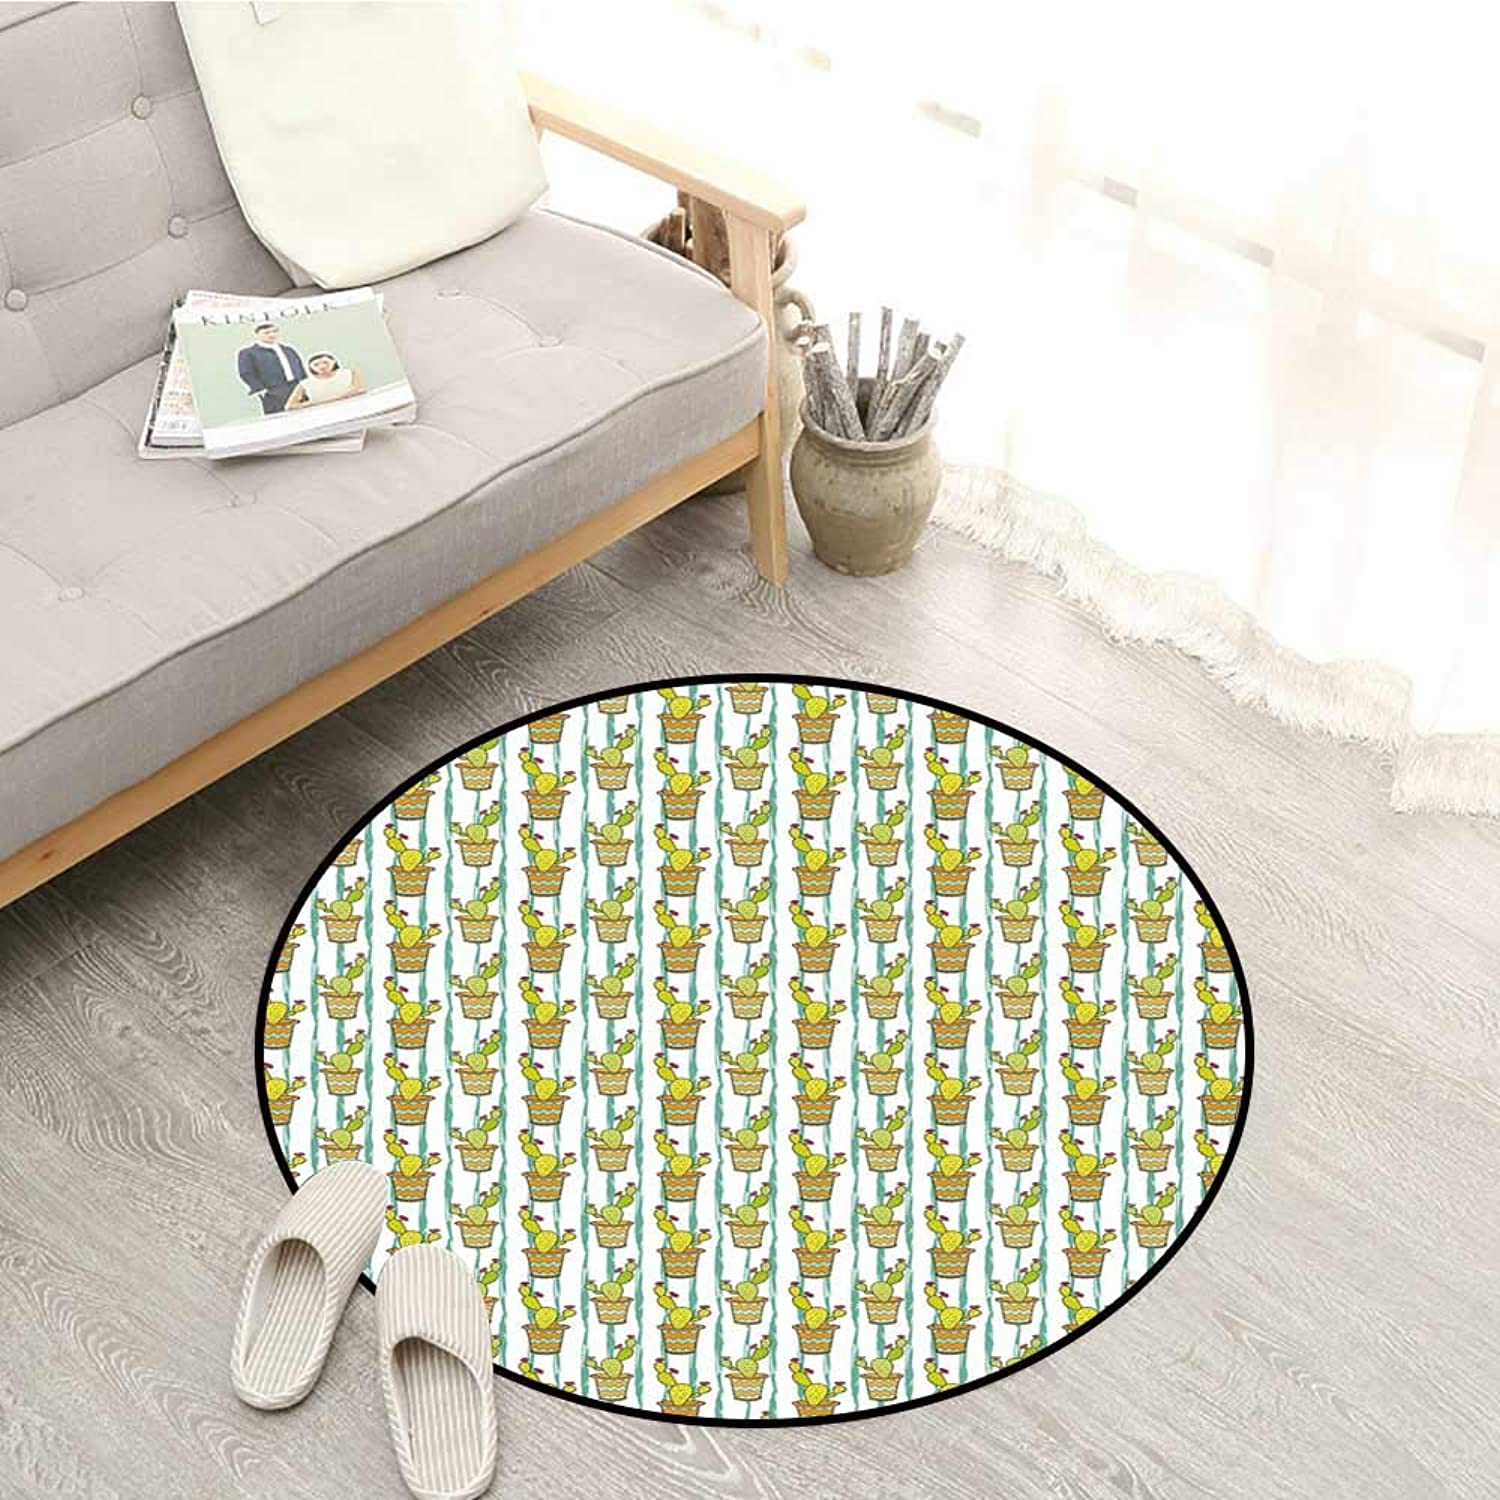 Cactus Kids Rugs greenical Lined Cartoon Drawing Style Zigzag Chevron Pattern Flowers in Pots Sofa Coffee Table Mat 4'11  Green orange Mint